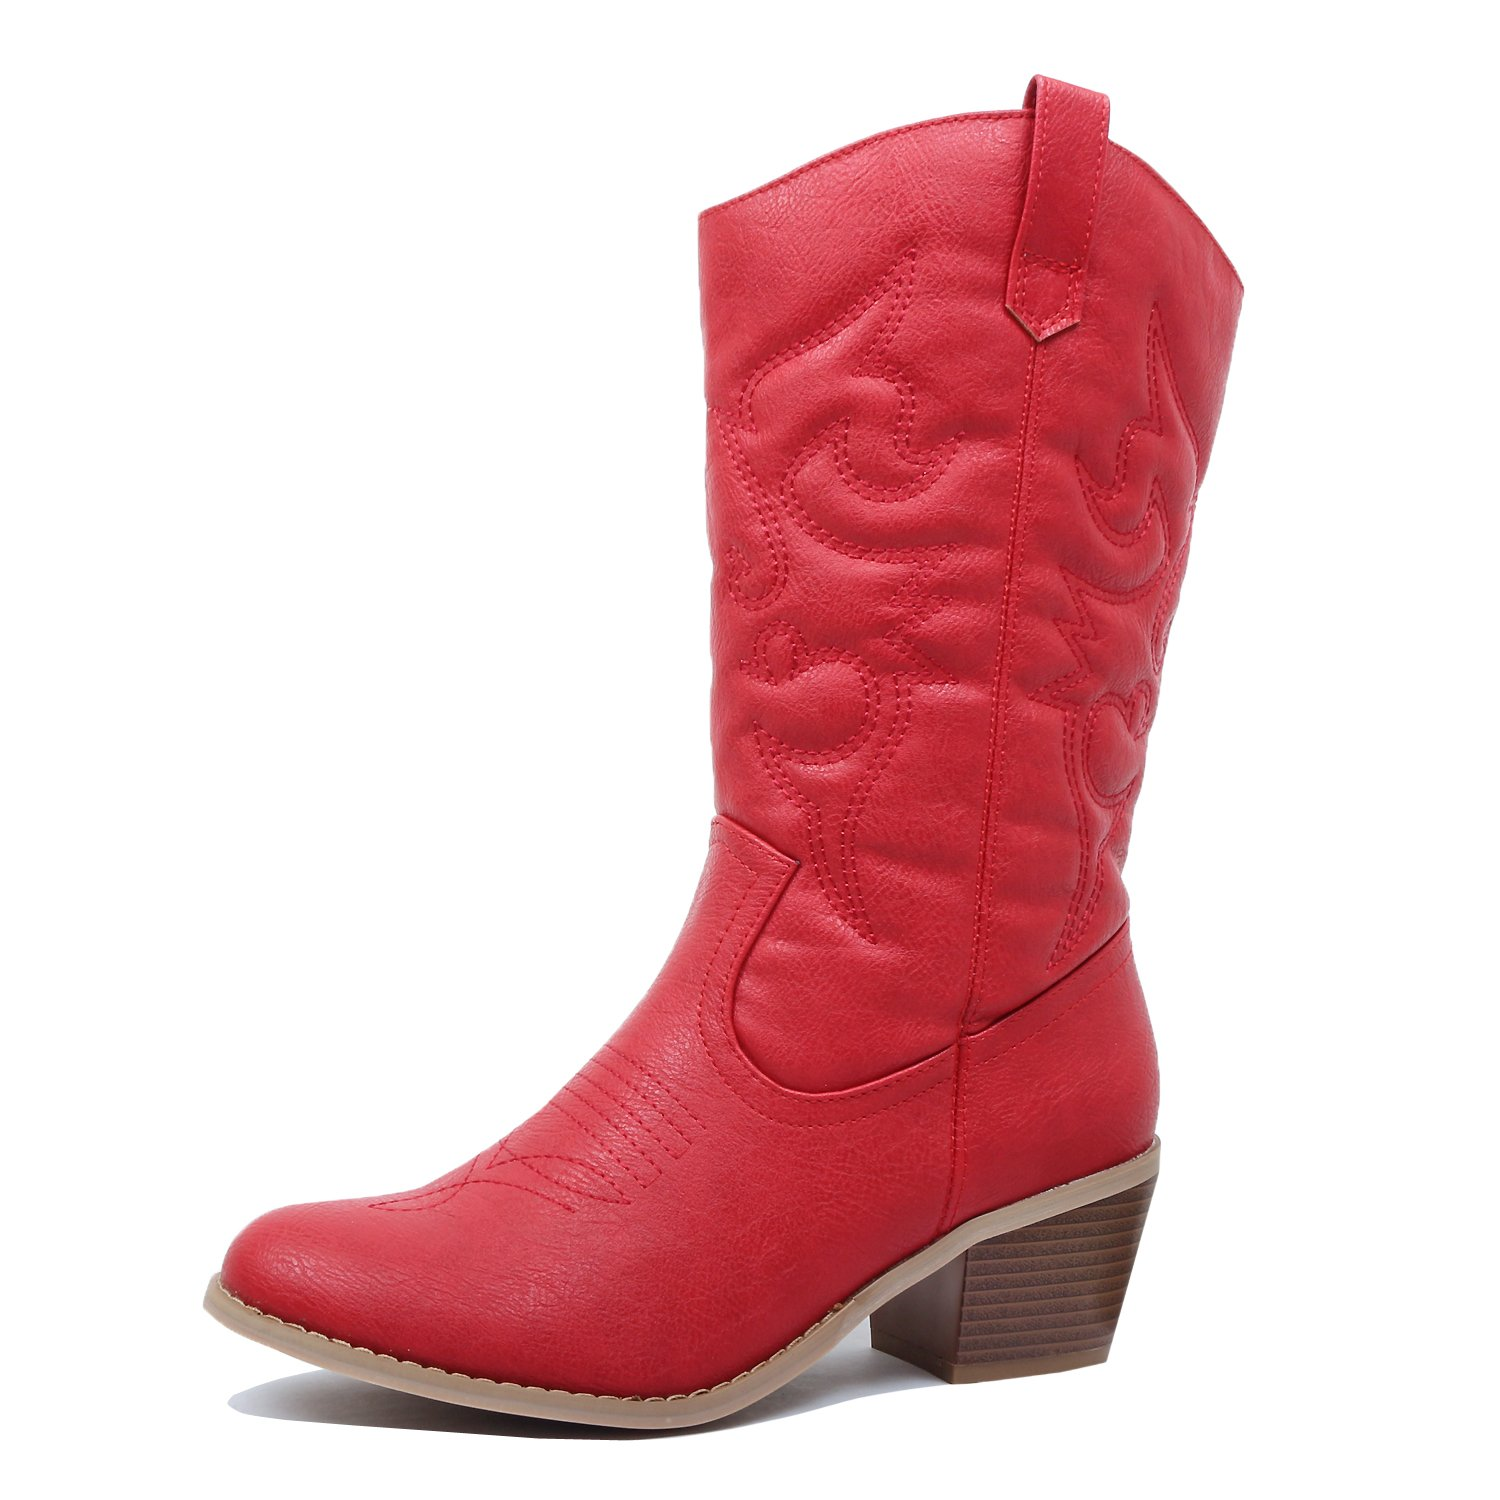 West Blvd Miami Cowboy Western Boots Boots, Red Pu, 8.5 (B) M US